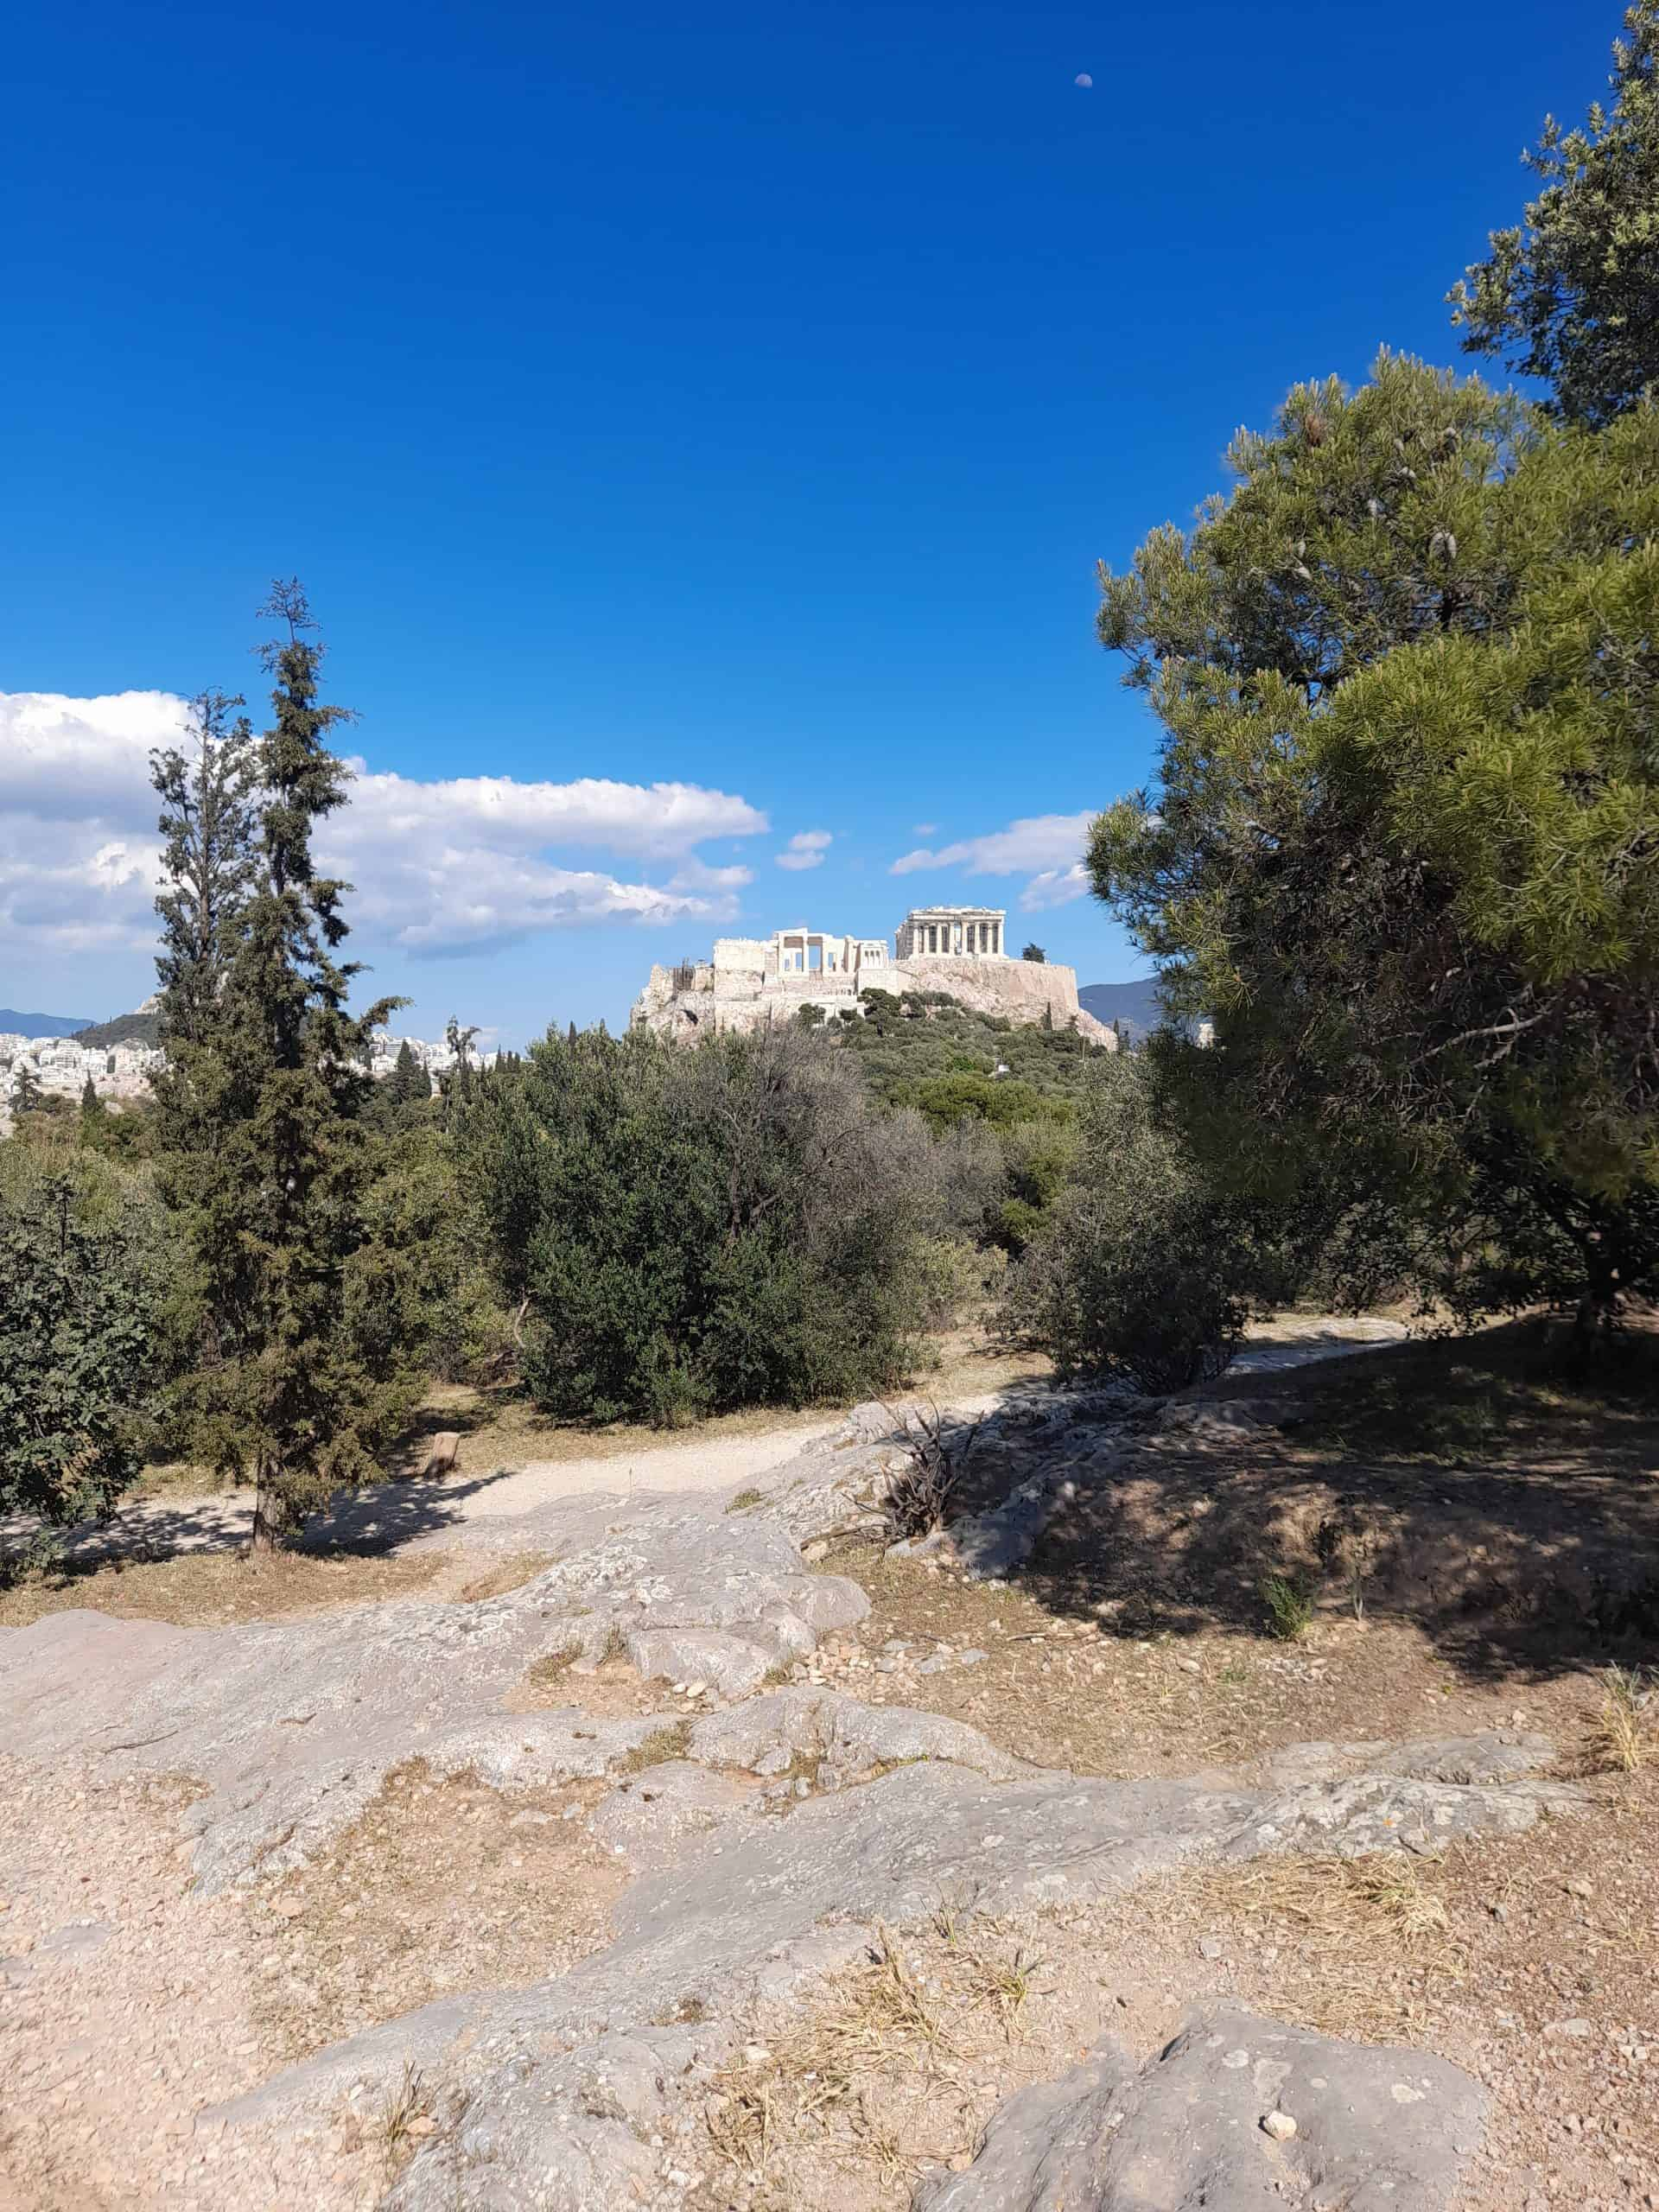 Looking out to the Acropolis from Pnyx Hill